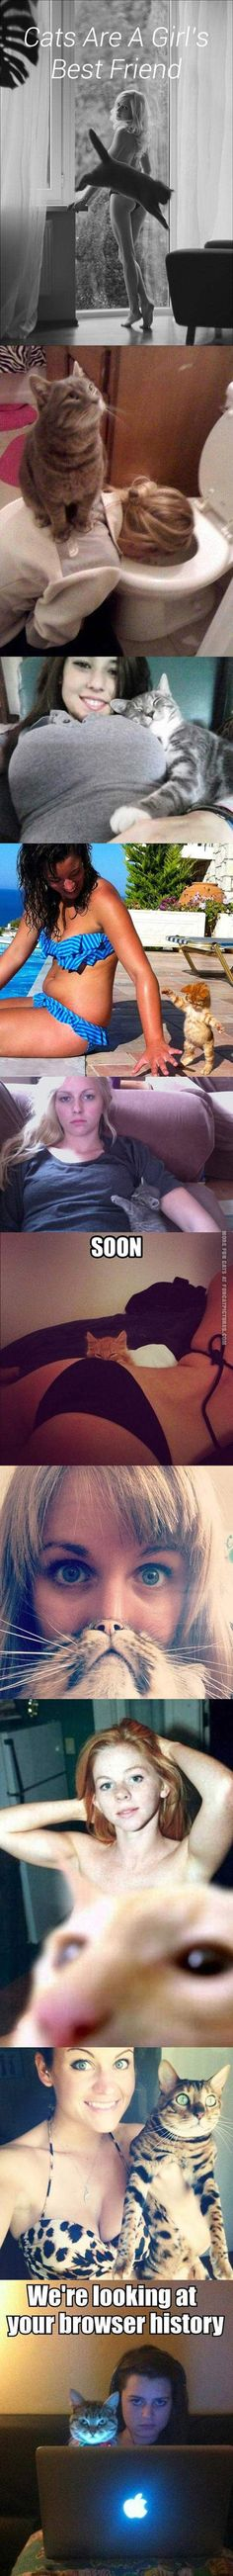 lol at the kitty with the girl throwing up....and as a side note; it must be universal, cats LOVE boobs lol, mine sure do Xp lol